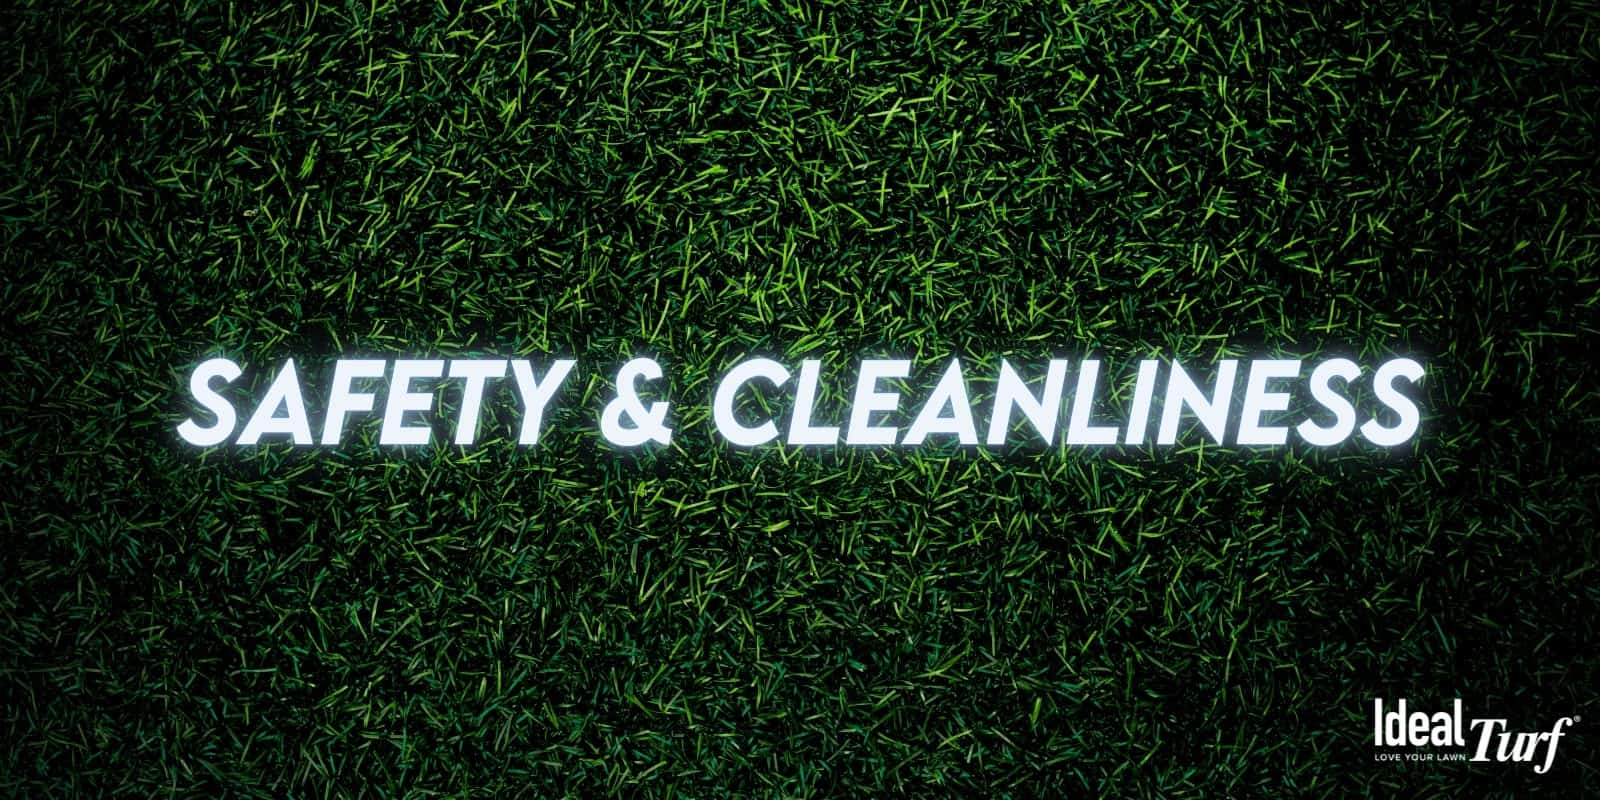 Safety & Cleanliness